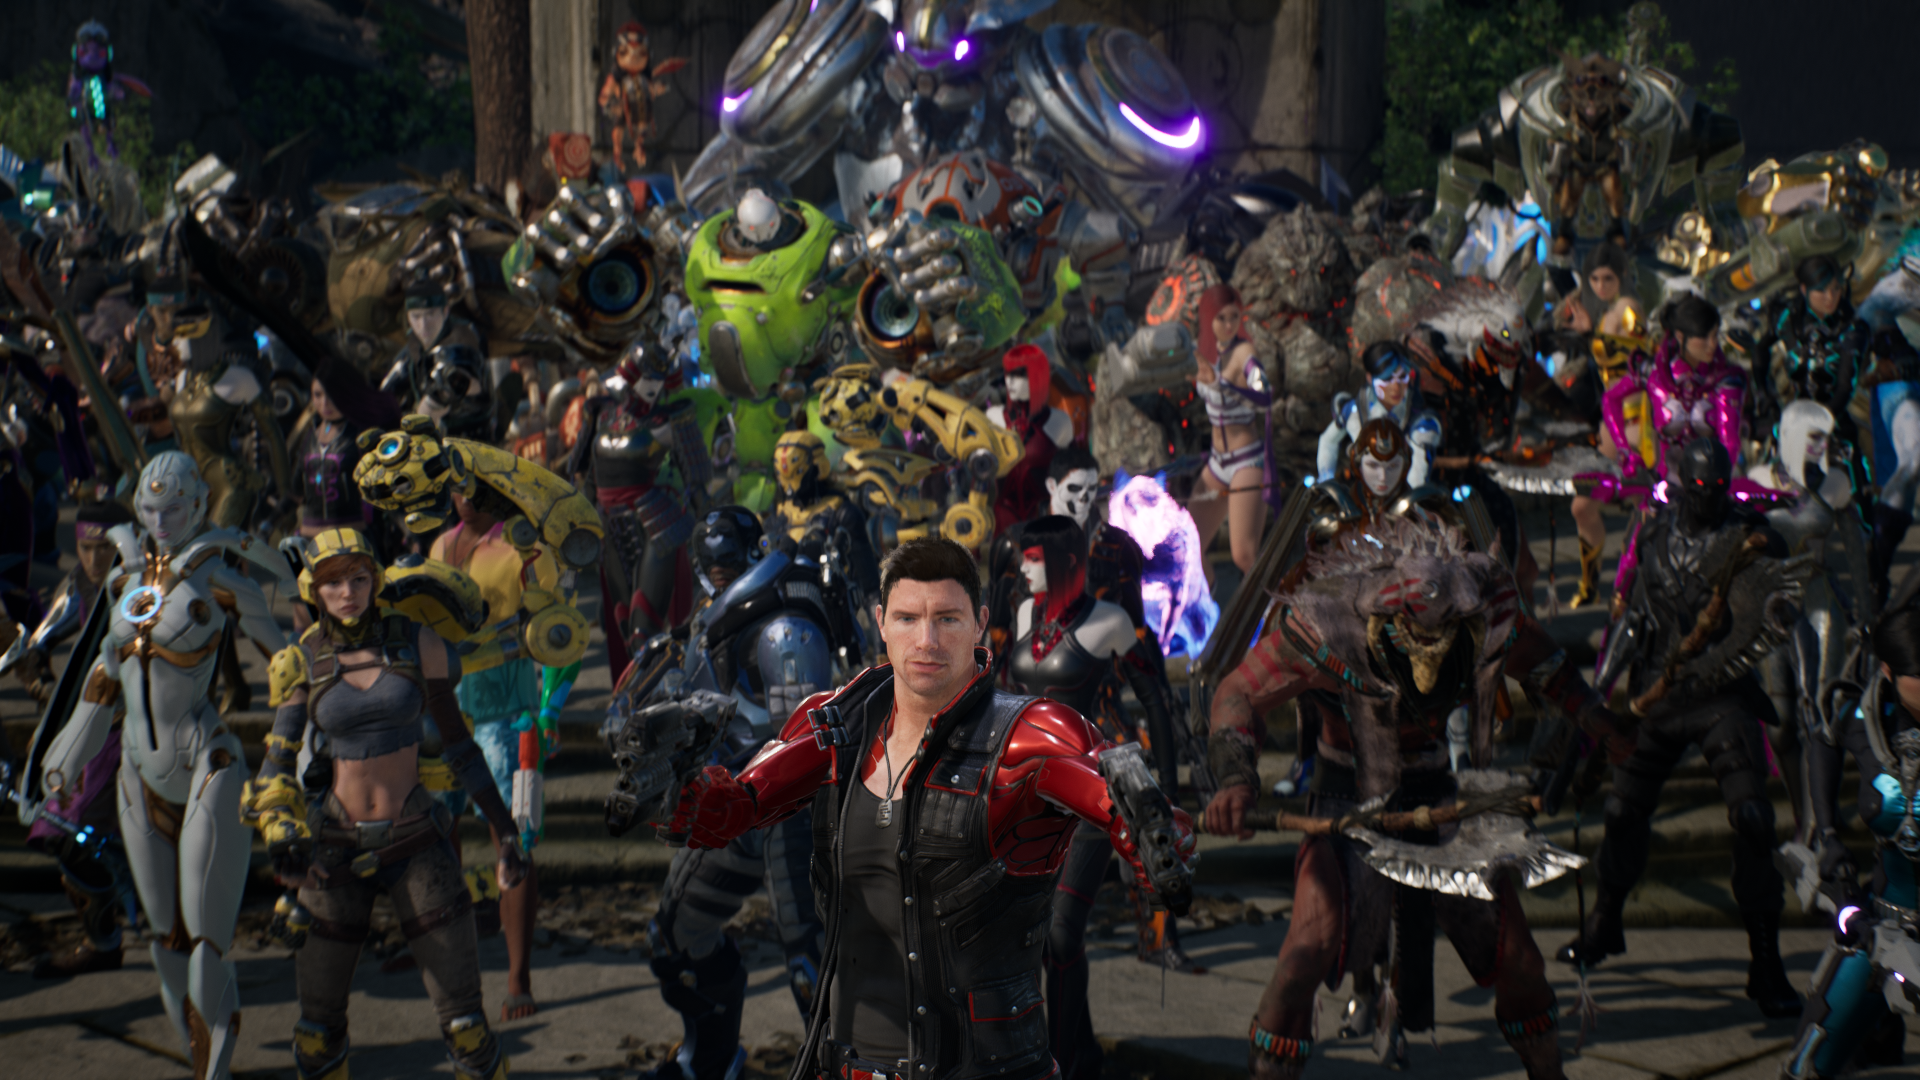 With Paragon Dying, Epic Games Is Making The Characters And Environments Free